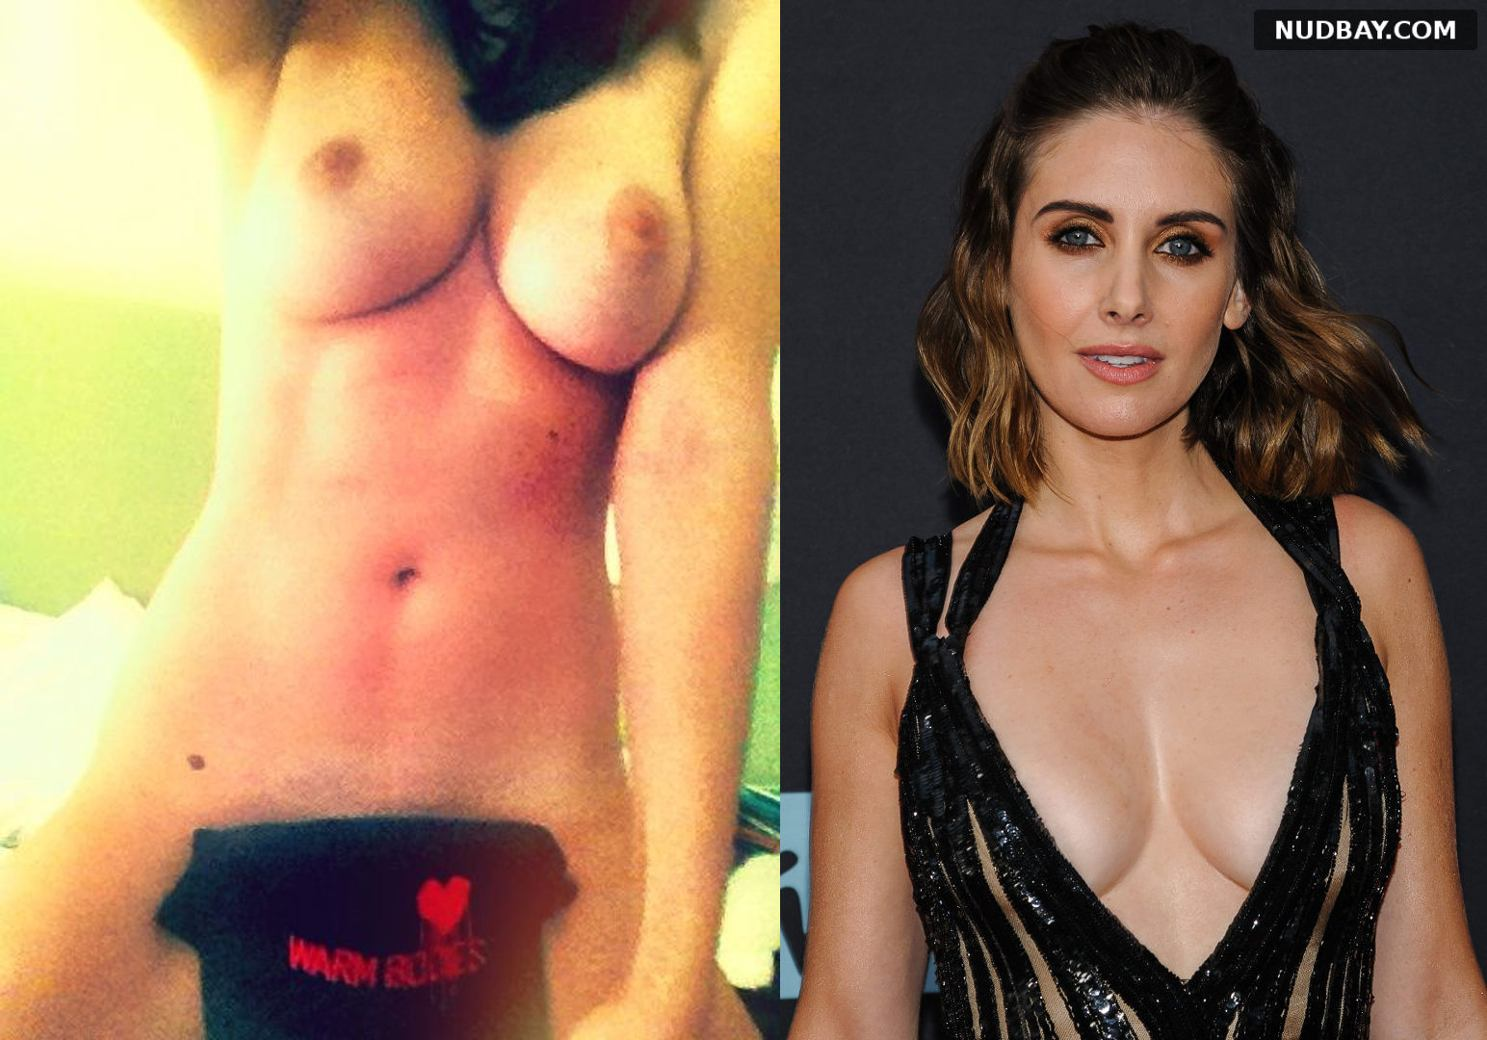 Alison-Brie-nude-showing-big-tits-2021